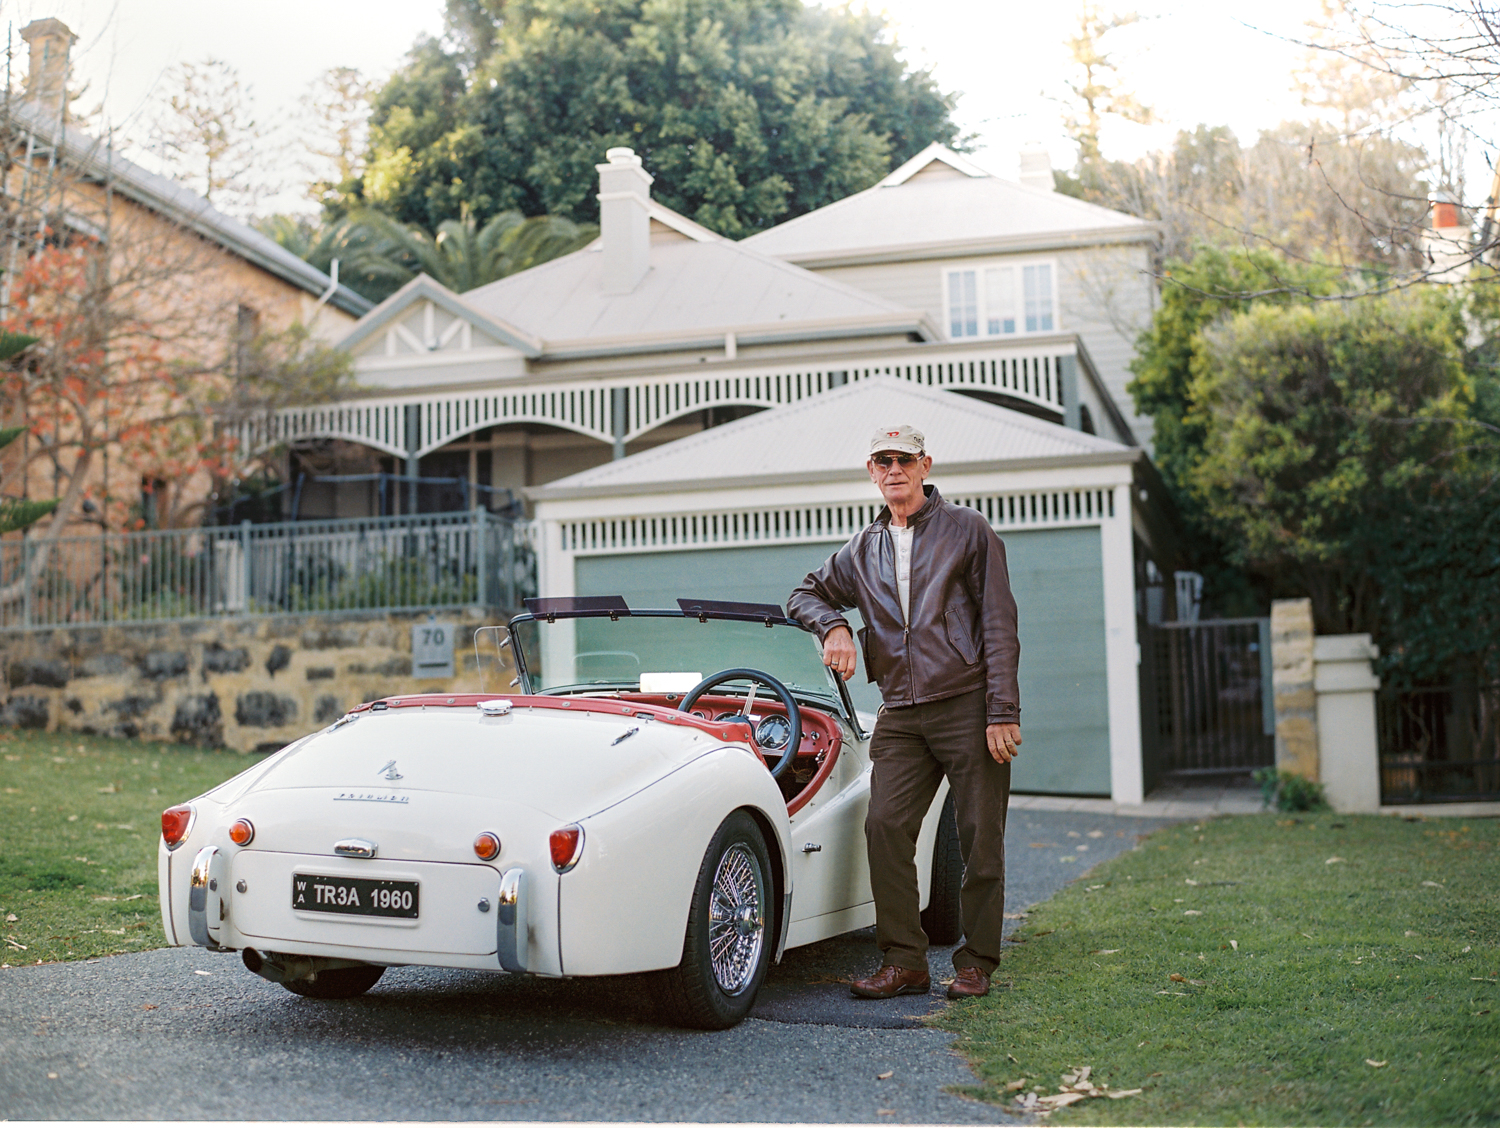 This is a 1958/59 Triumph TR3A that Mike has owned for about 12 years, during which he has restored it from poor condition to a reliable classic. It is  an ongoing labour of love.